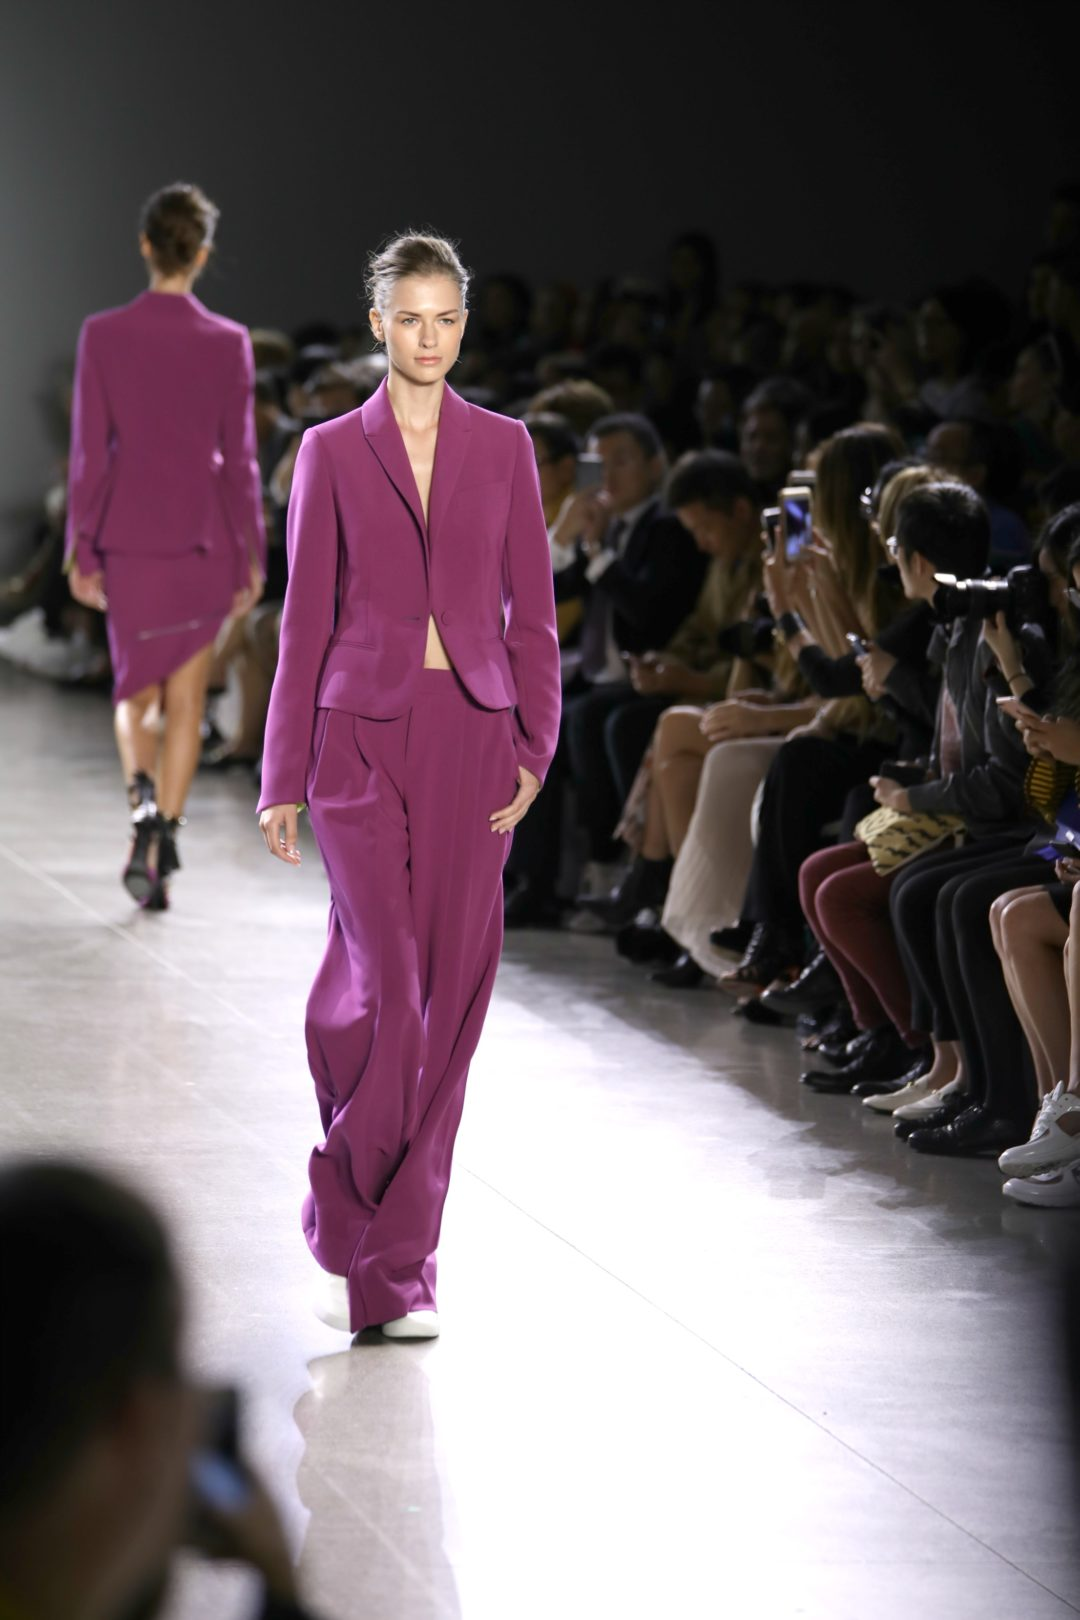 Taoray Wang SS 2019, suit trend, pink trend